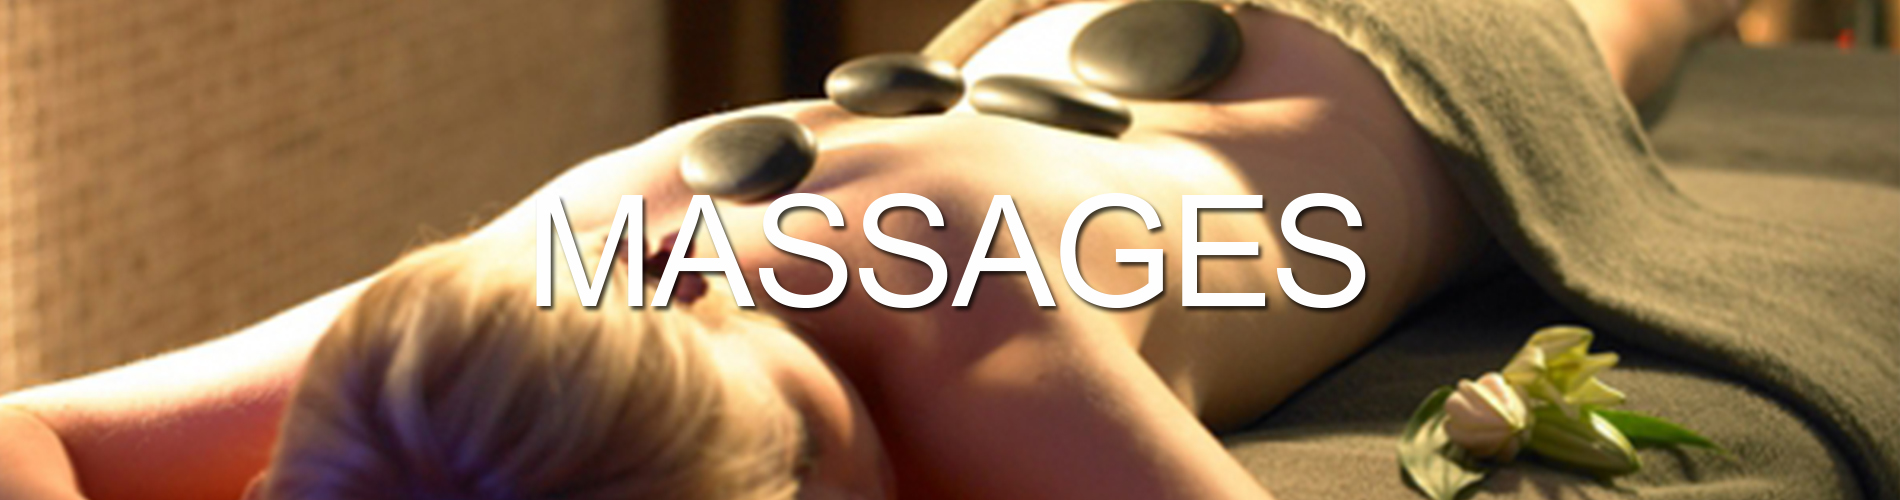 massages_centrebleuazur1